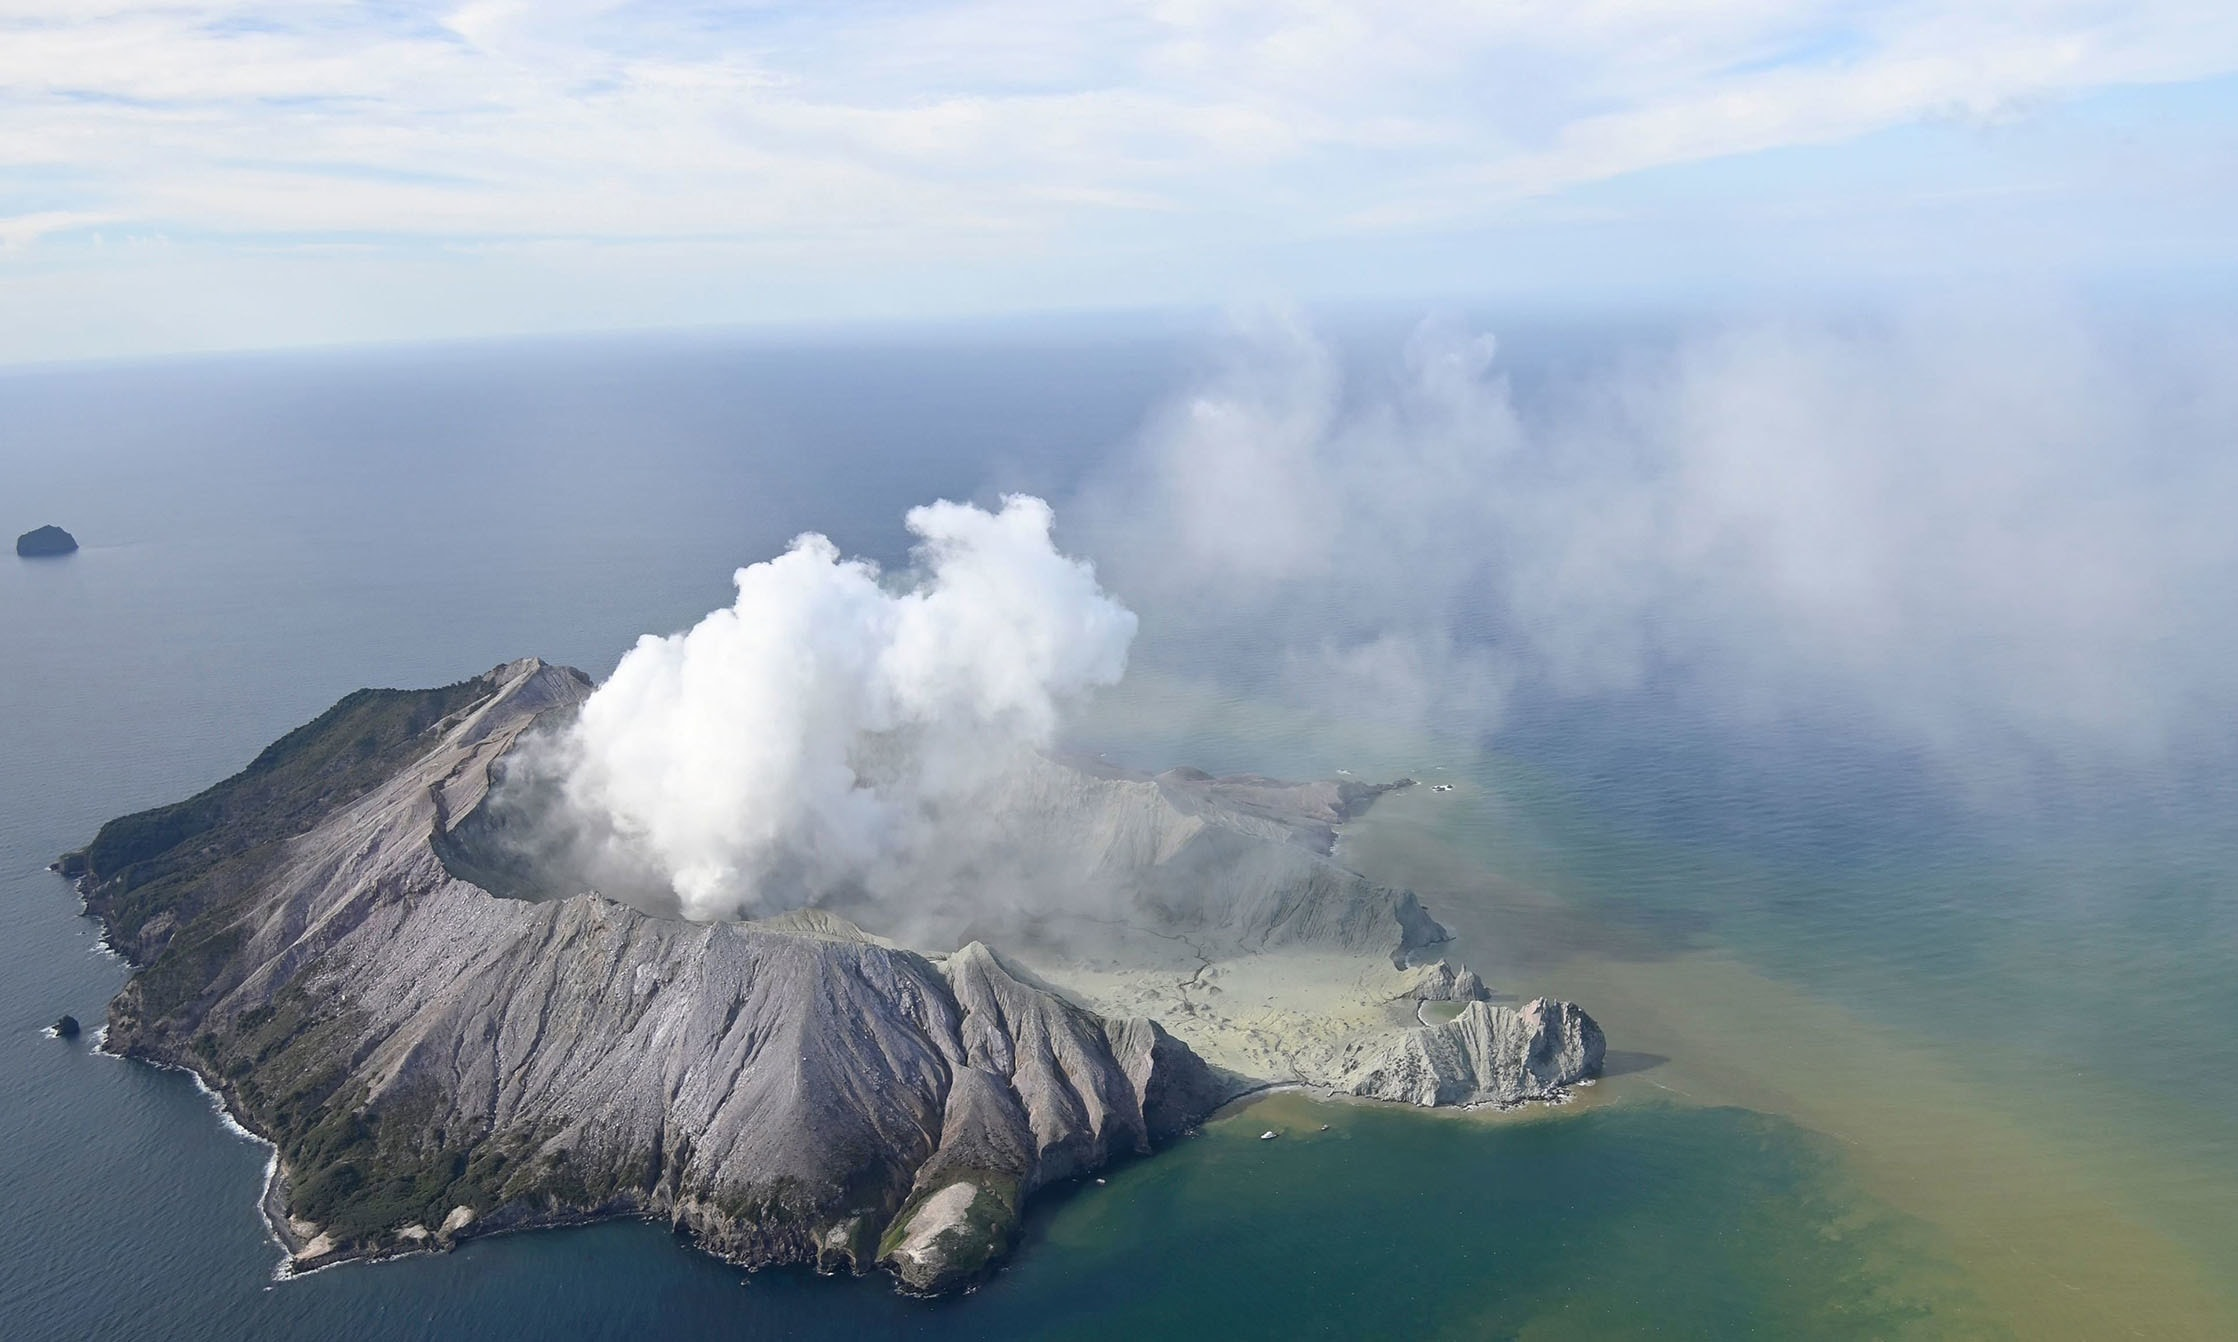 5 dead, many more missing after volcano erupts in New Zealand